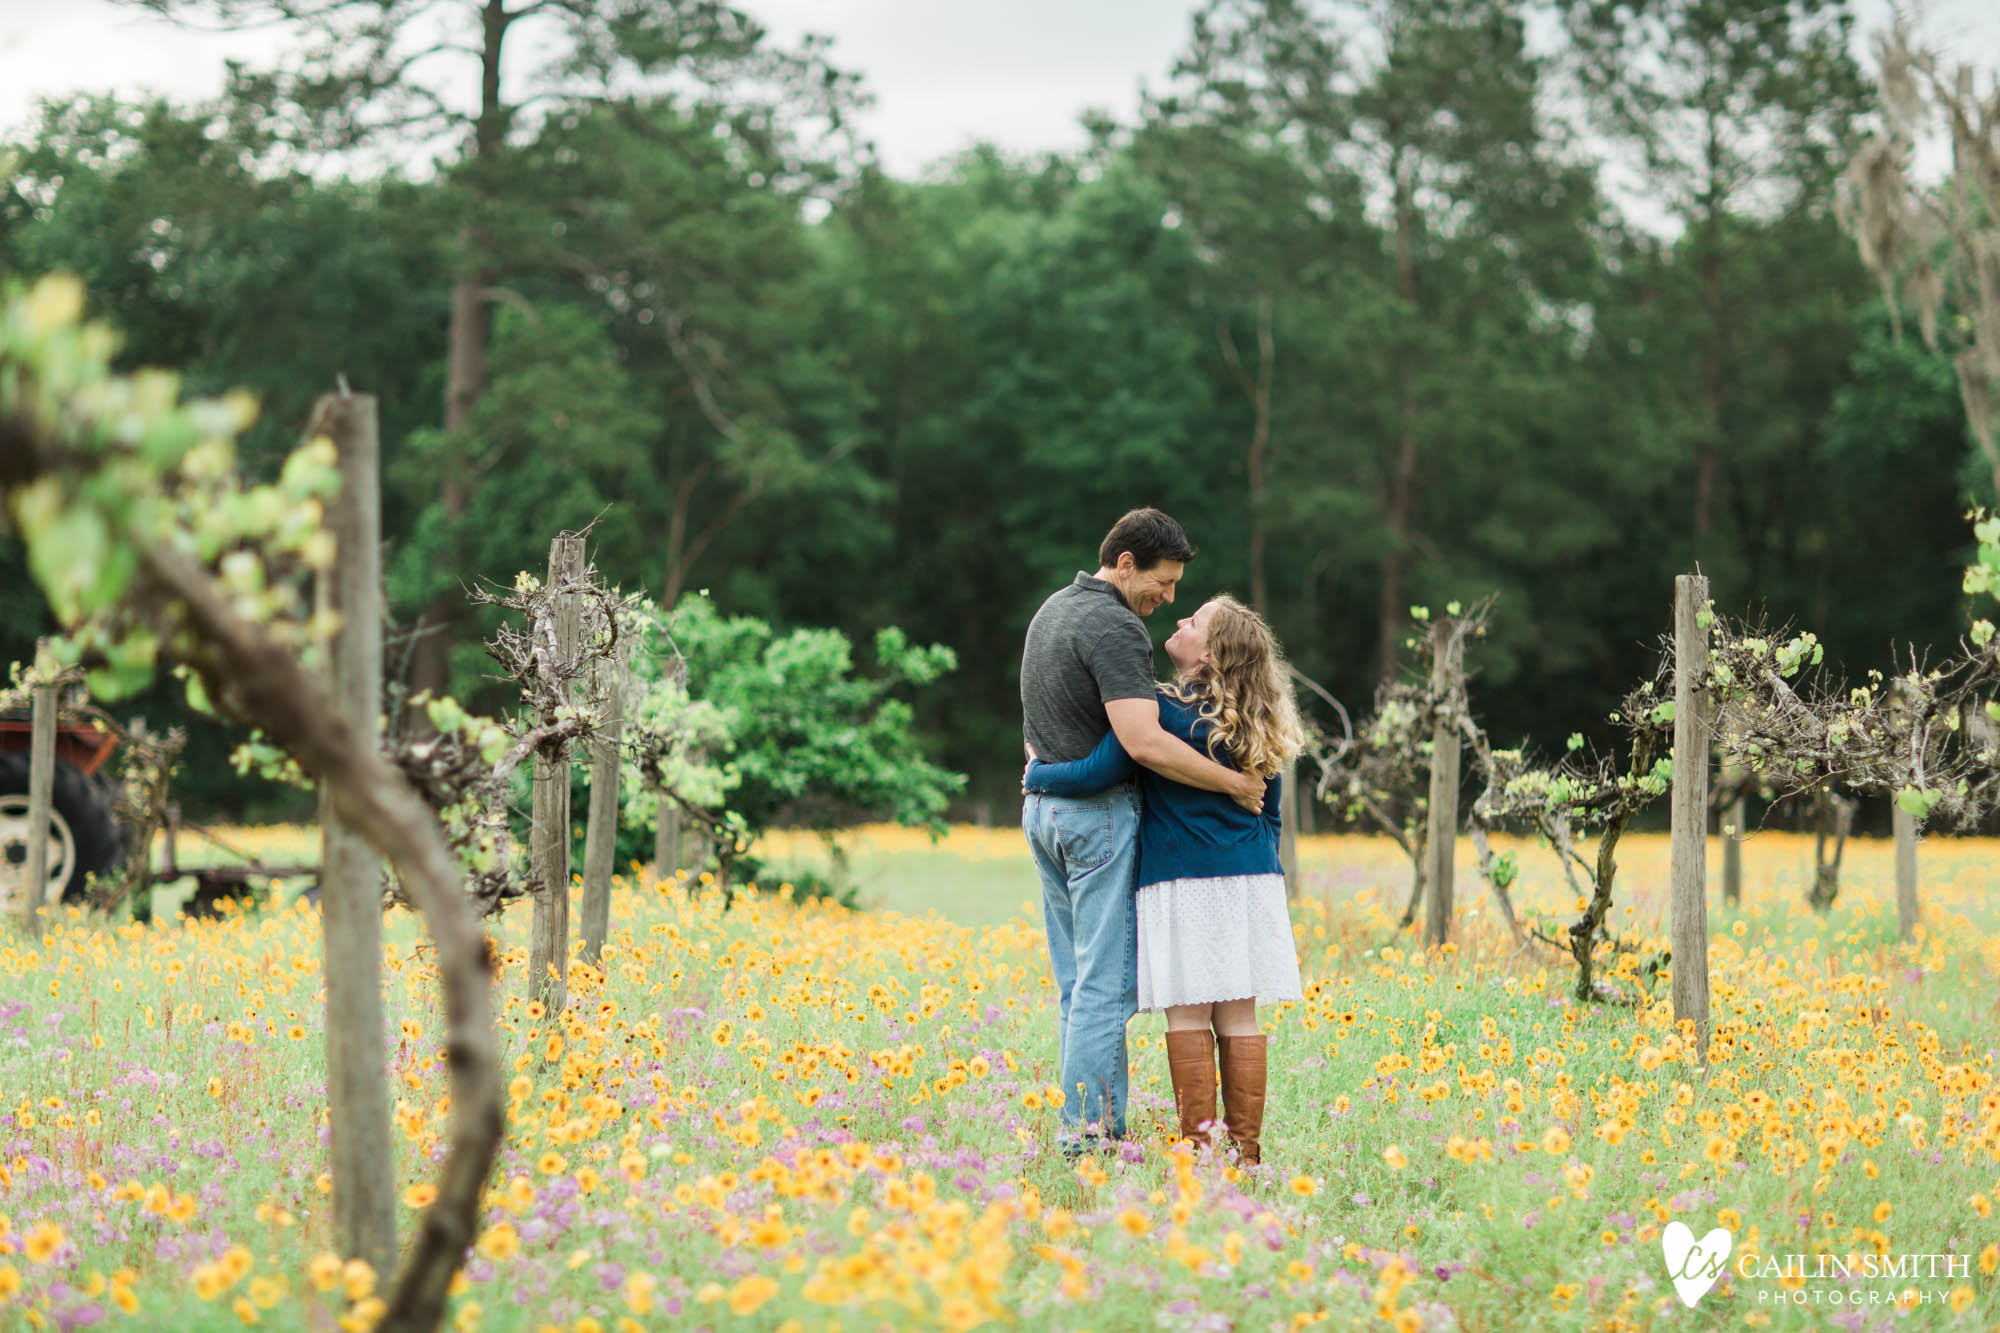 Christie_Nathan_Flower_Field_engagement_Photography_010.jpg